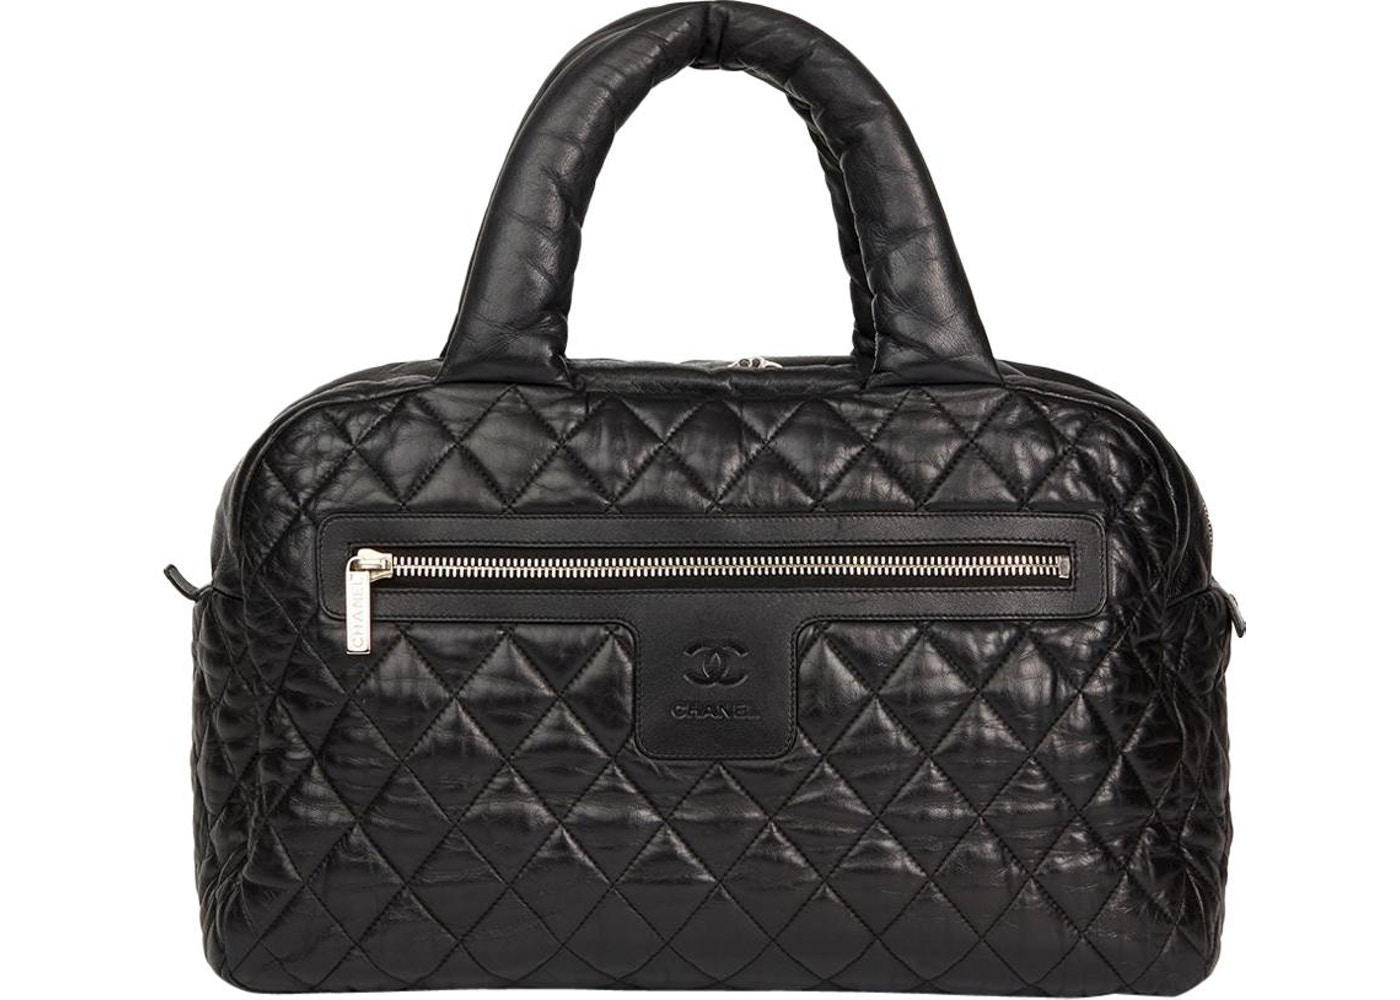 9df2677080ca Chanel Coco Cocoon Bowling Bag Quilted Lambskin Black. Quilted Lambskin  Black